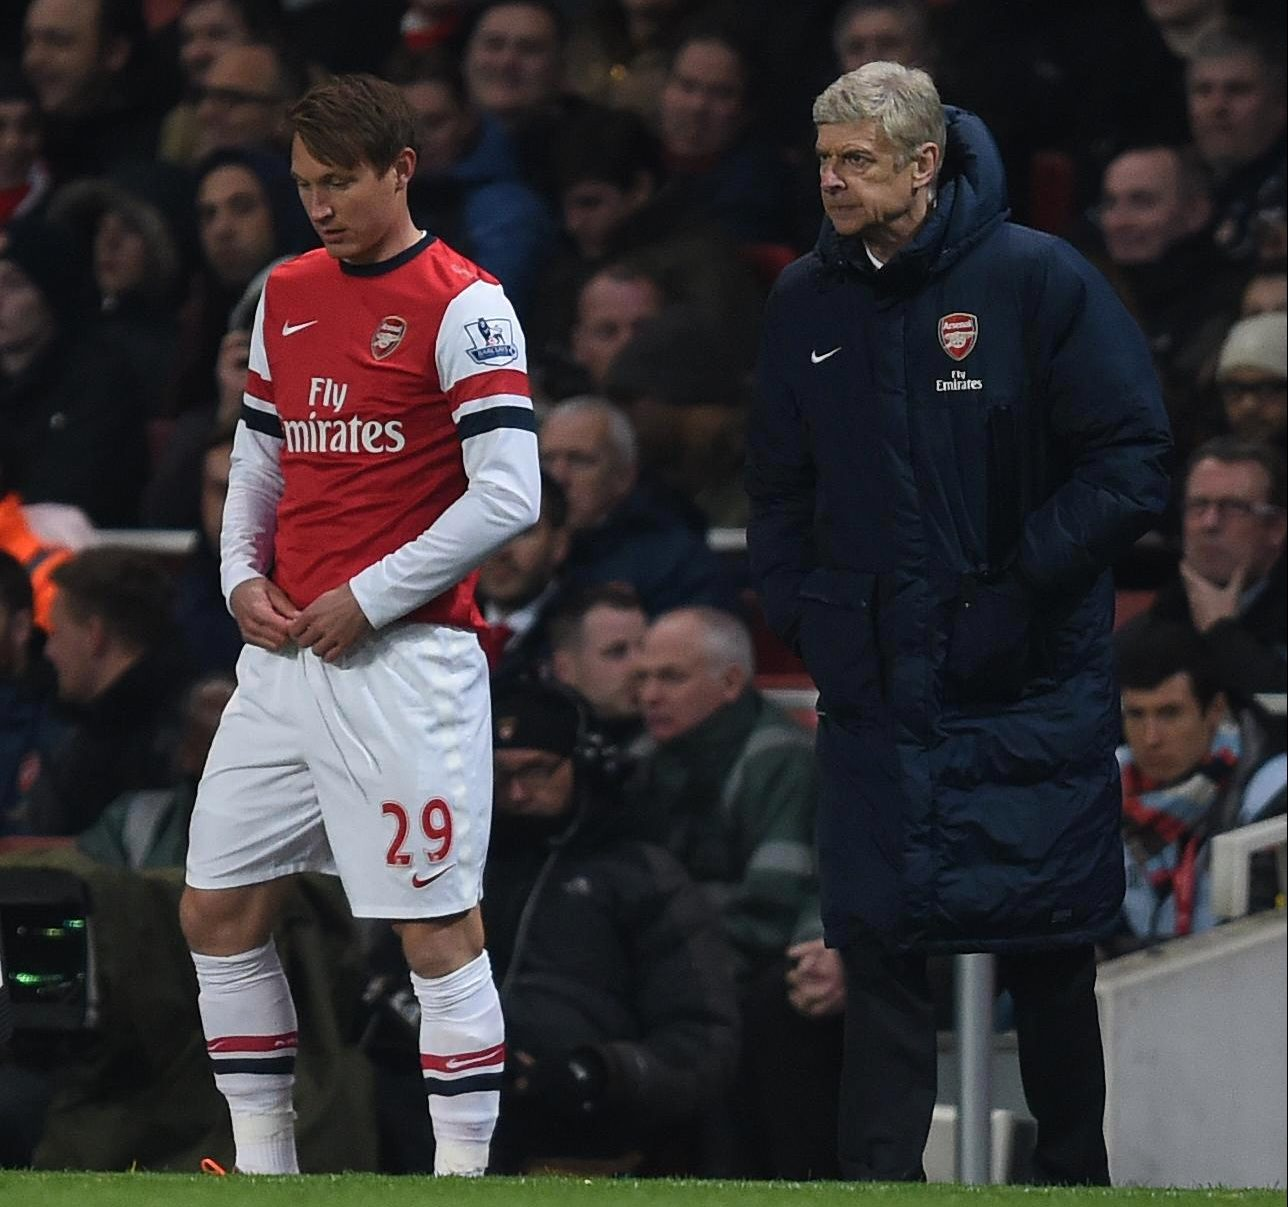 Arsene Wenger famously once signed a man with a broken back